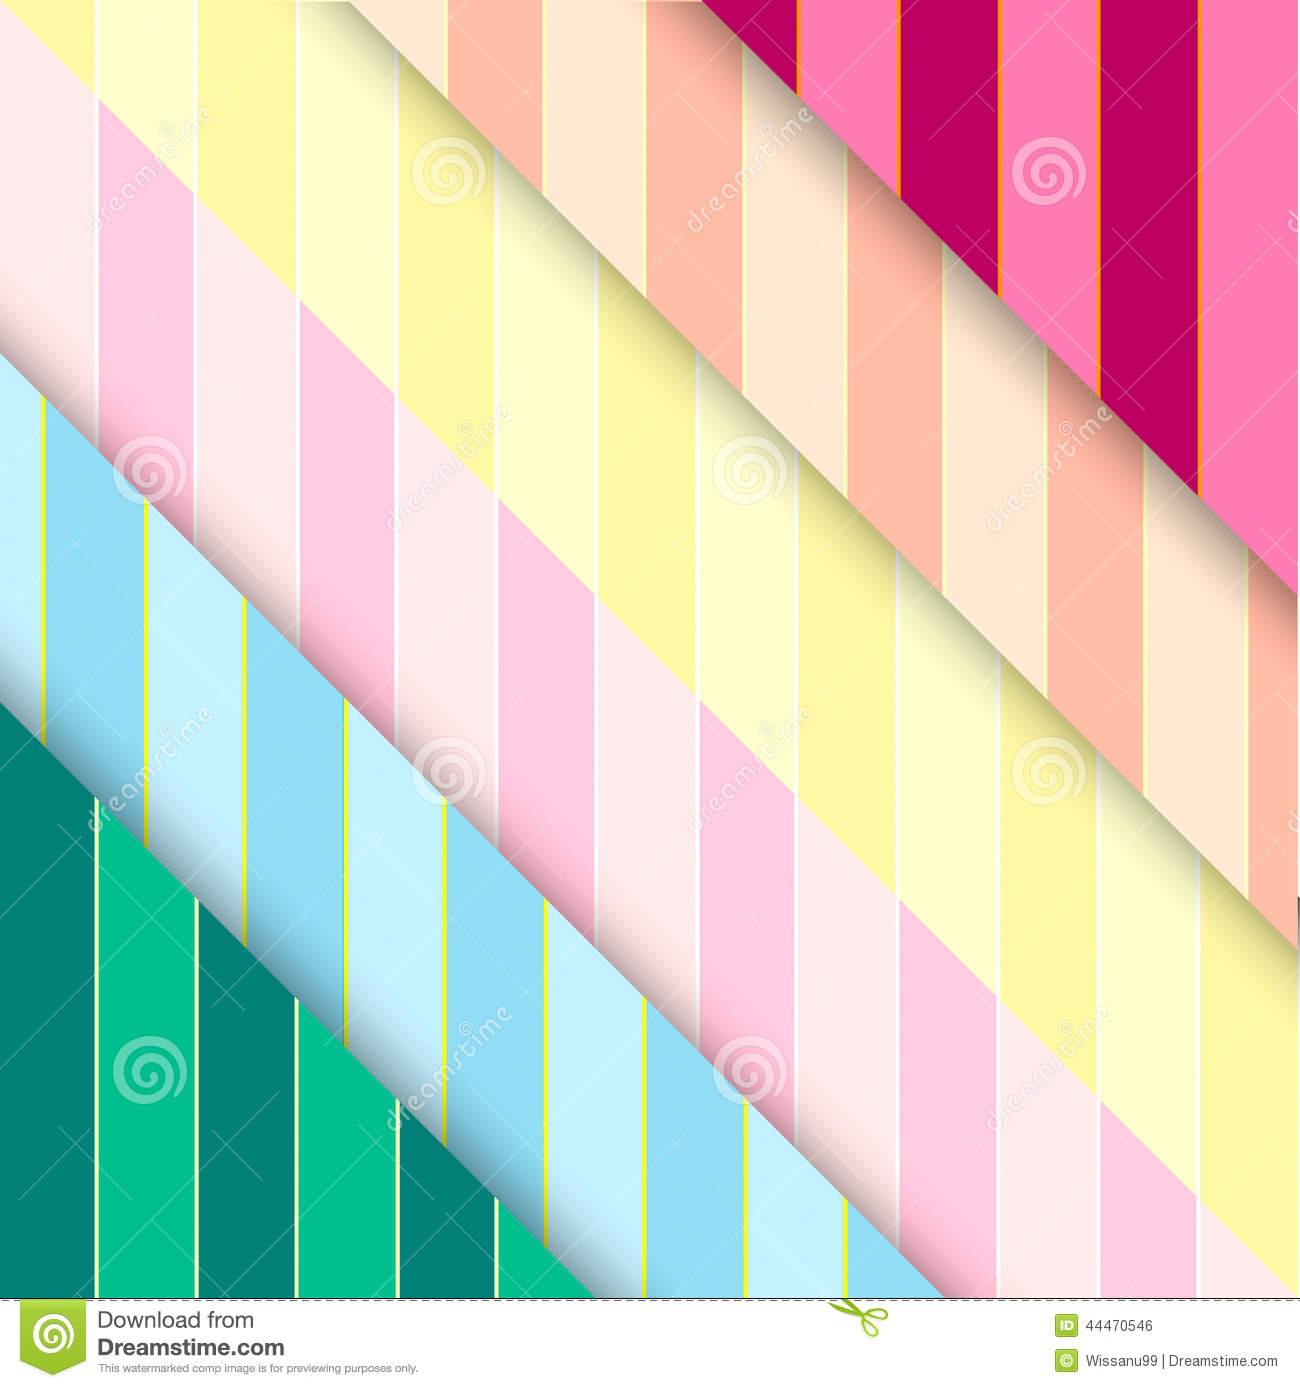 Download Six Tones, Patterns And Backgrounds Stock Vector - Illustration of difference, diagonal: 44470546